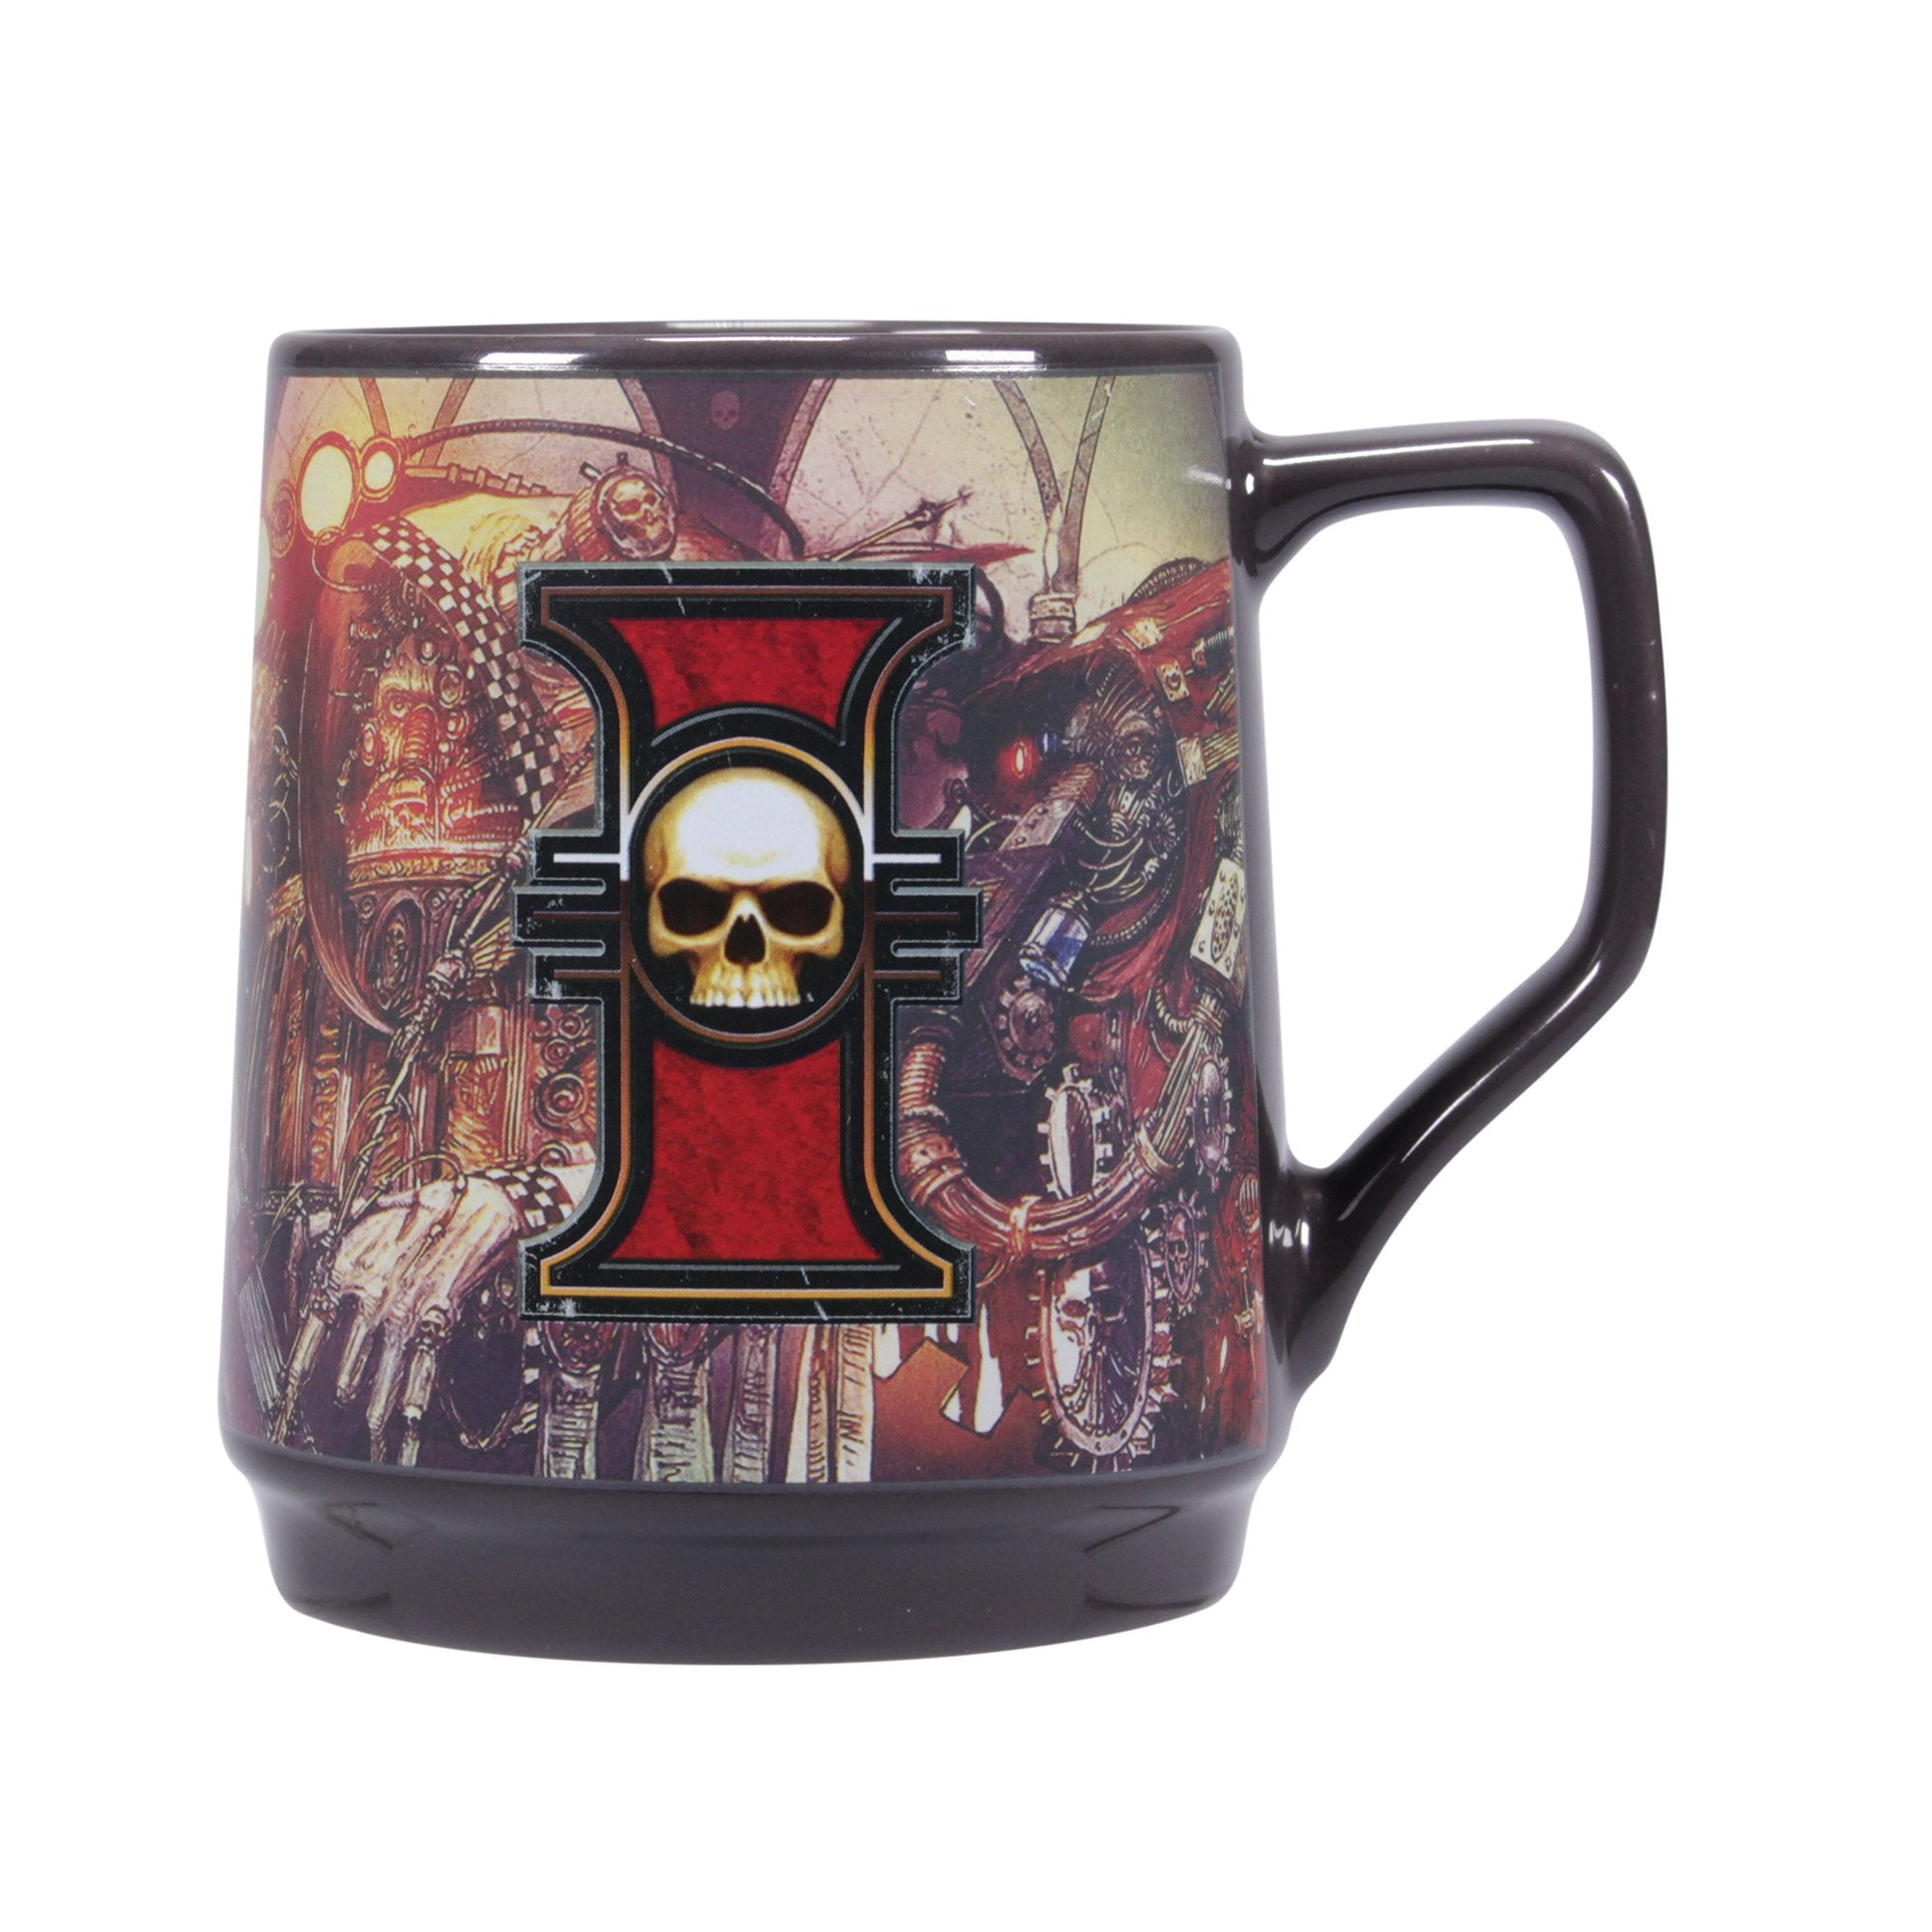 Warhammer 40,000 Heat Changing Tankard Mug - Inquisition - Half Moon Bay US